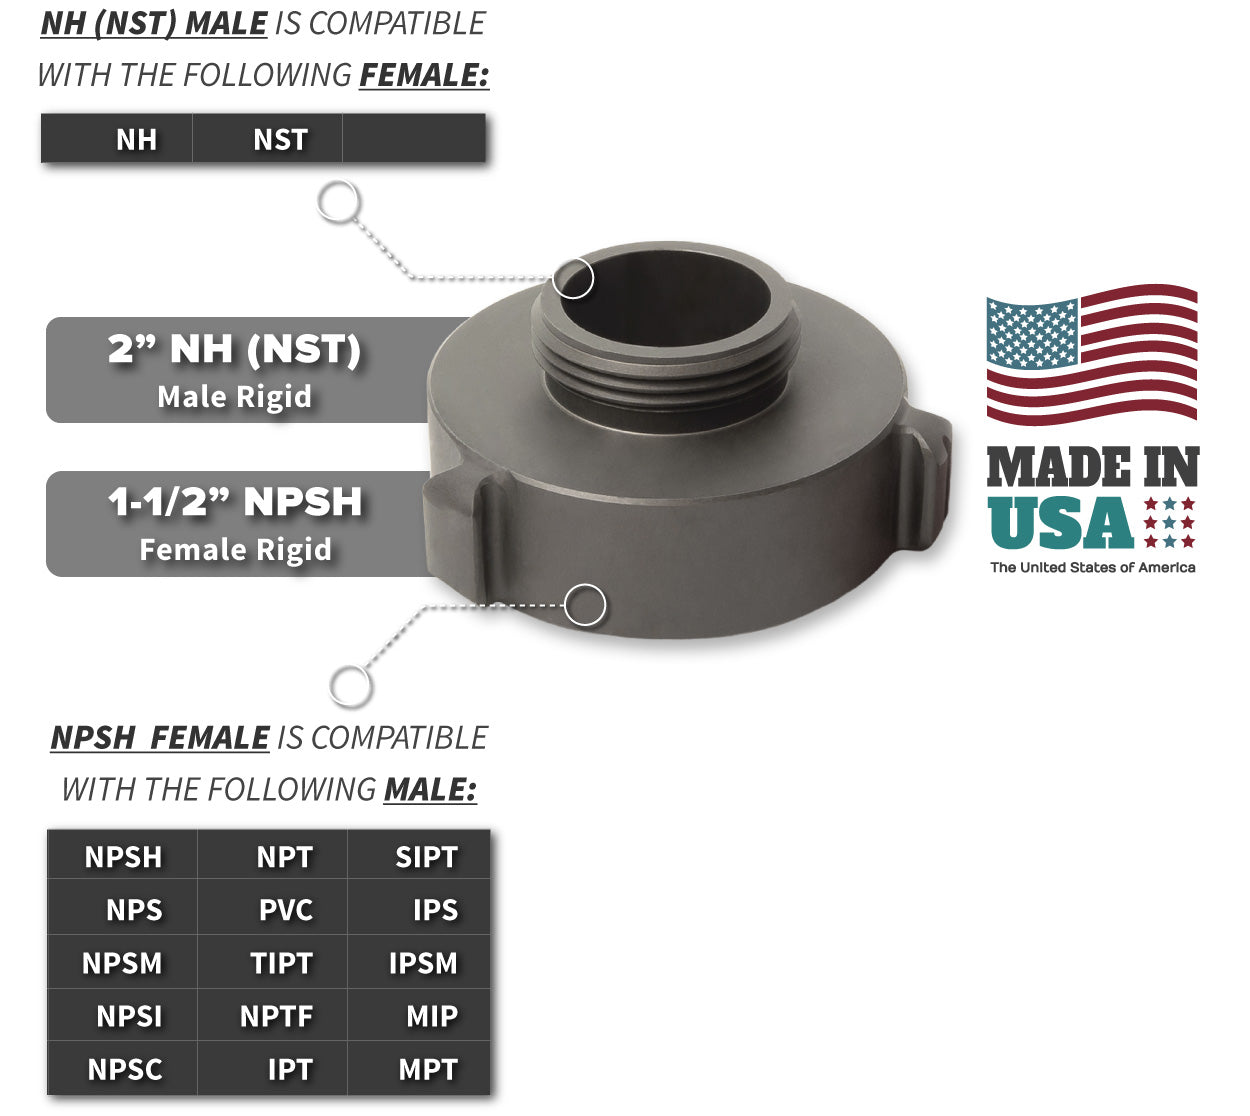 1.5 Inch NPSH Female x 2 Inch NH-NST Male Compatibility Thread Chart